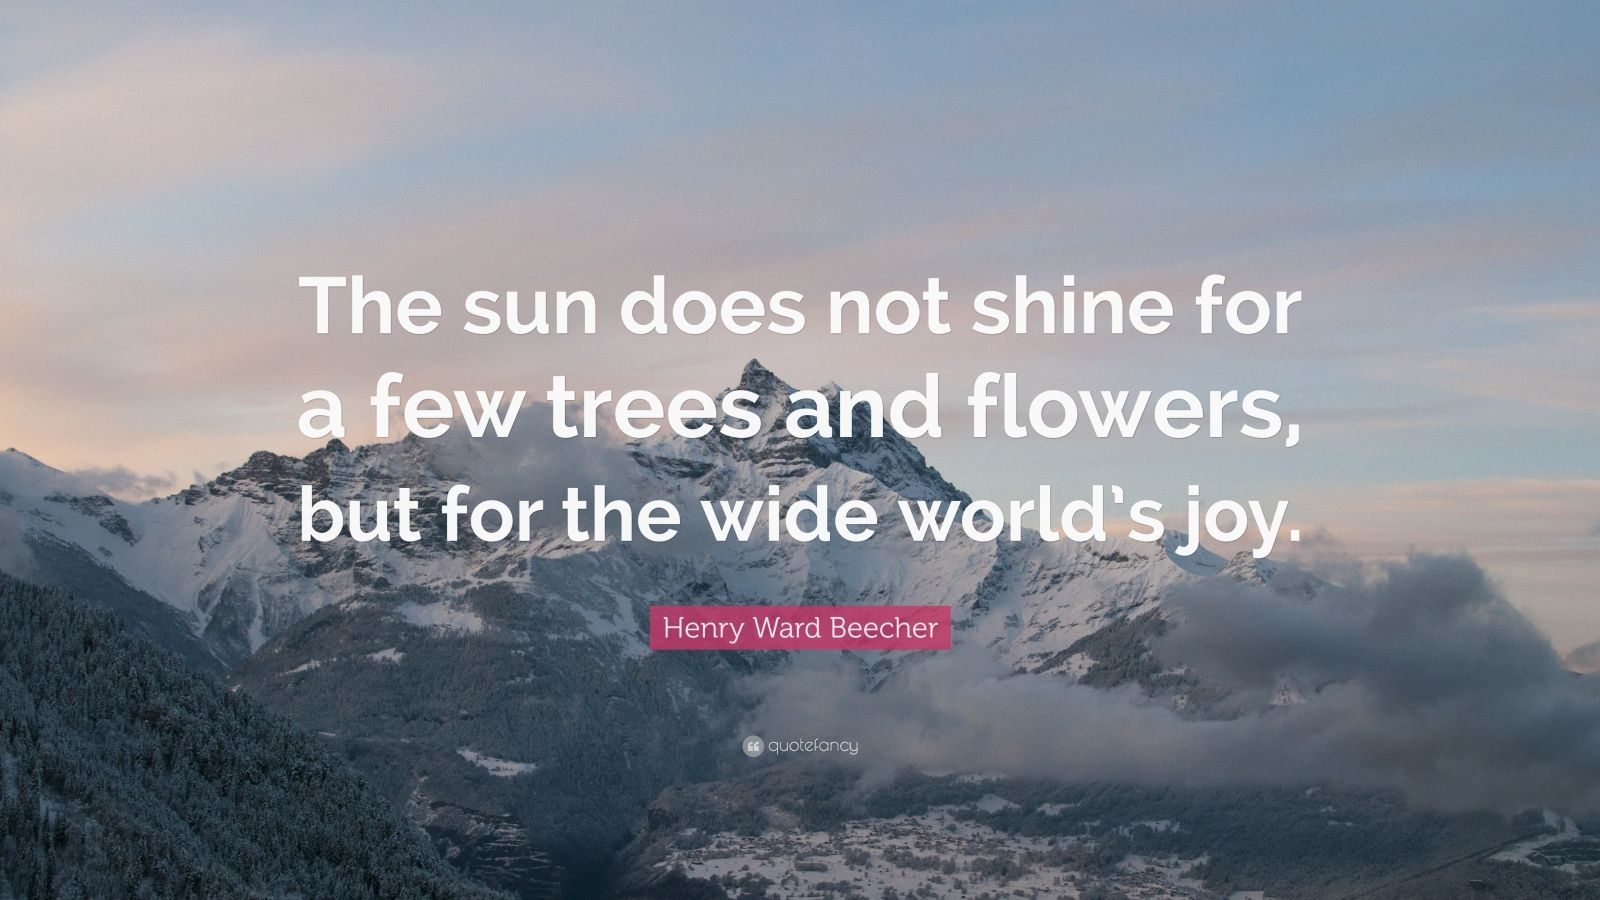 """Henry Ward Beecher Quote: """"The sun does not shine for a few trees and flowers, but for the wide world's joy."""""""